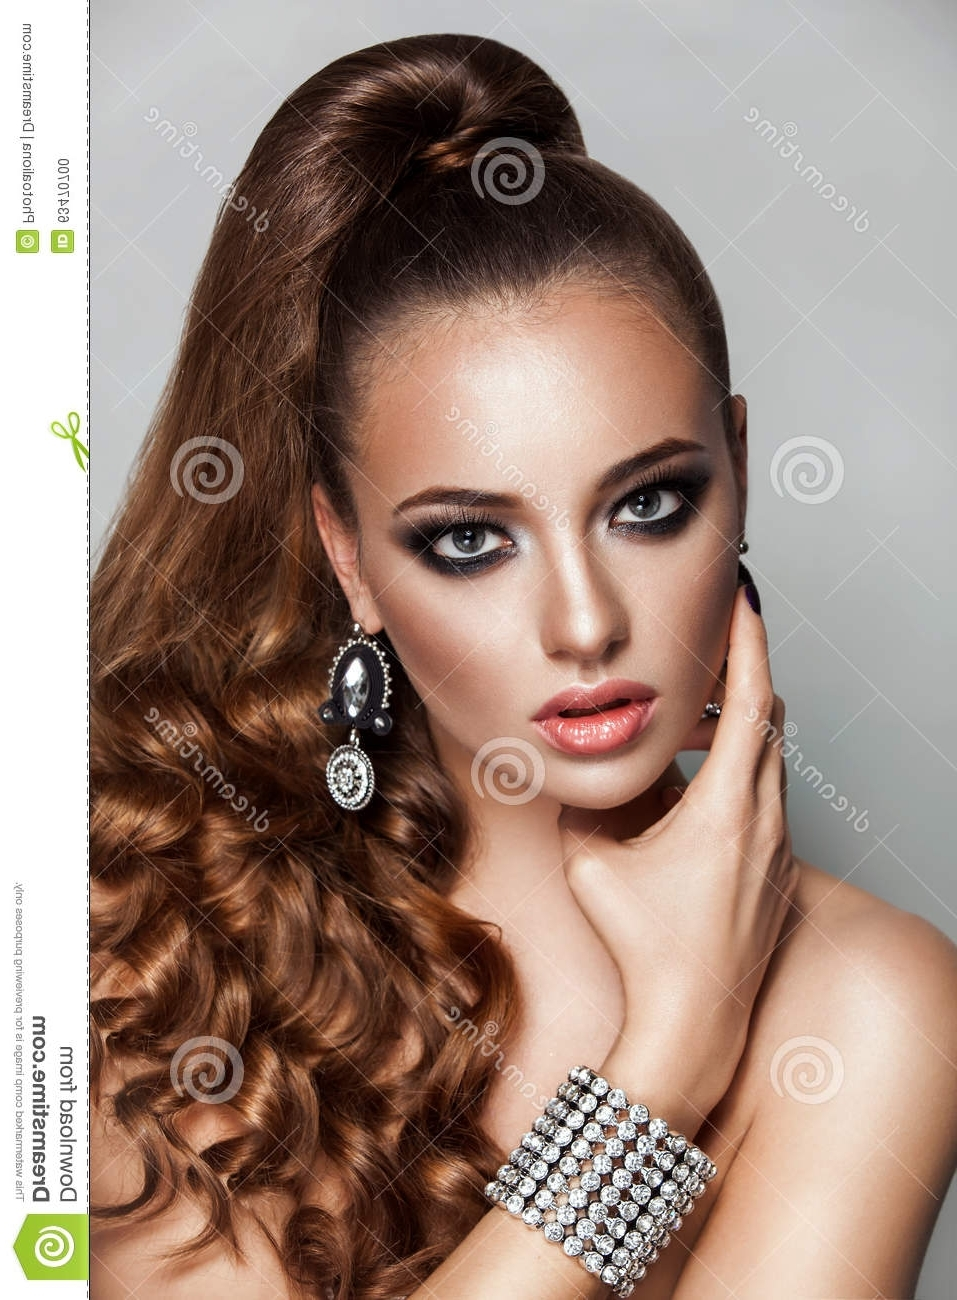 Beauty Brunette Fashion Model Girl With Long Healthy Curly Brown Regarding Well Known Ponytail Hairstyles For Brunettes (View 6 of 20)